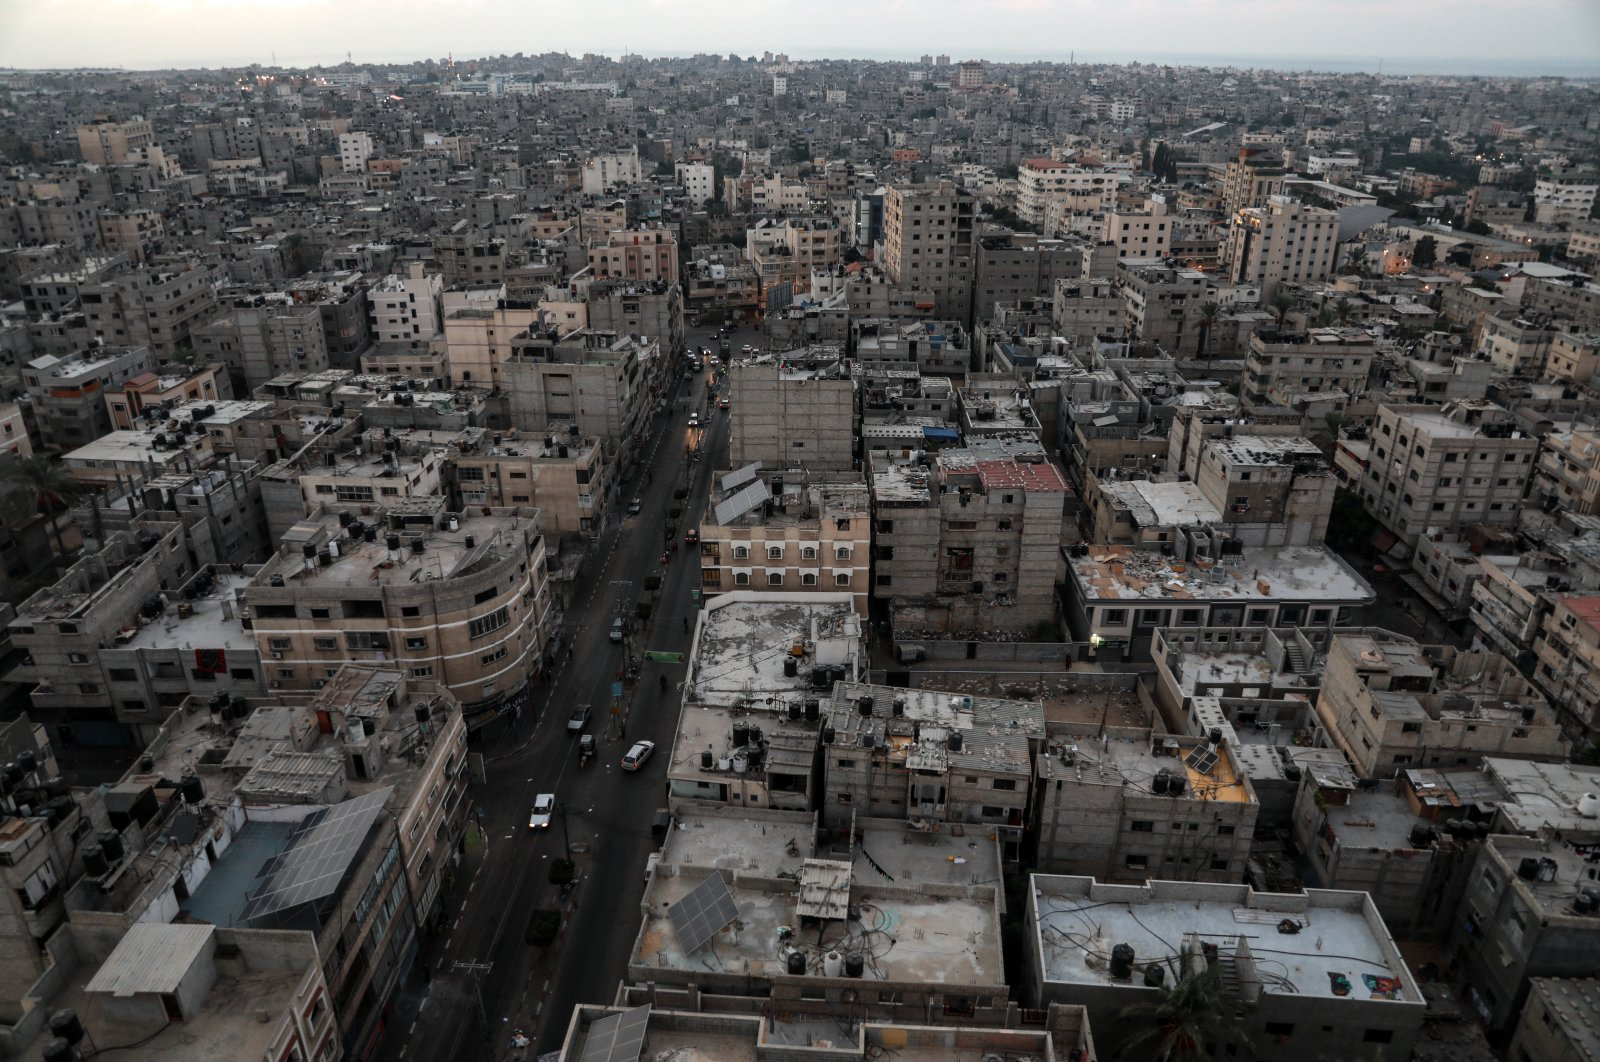 The general view of Khan Younis city in southern Gaza Strip, Palestine, Sept. 3, 2021. (Photo by Getty Images)